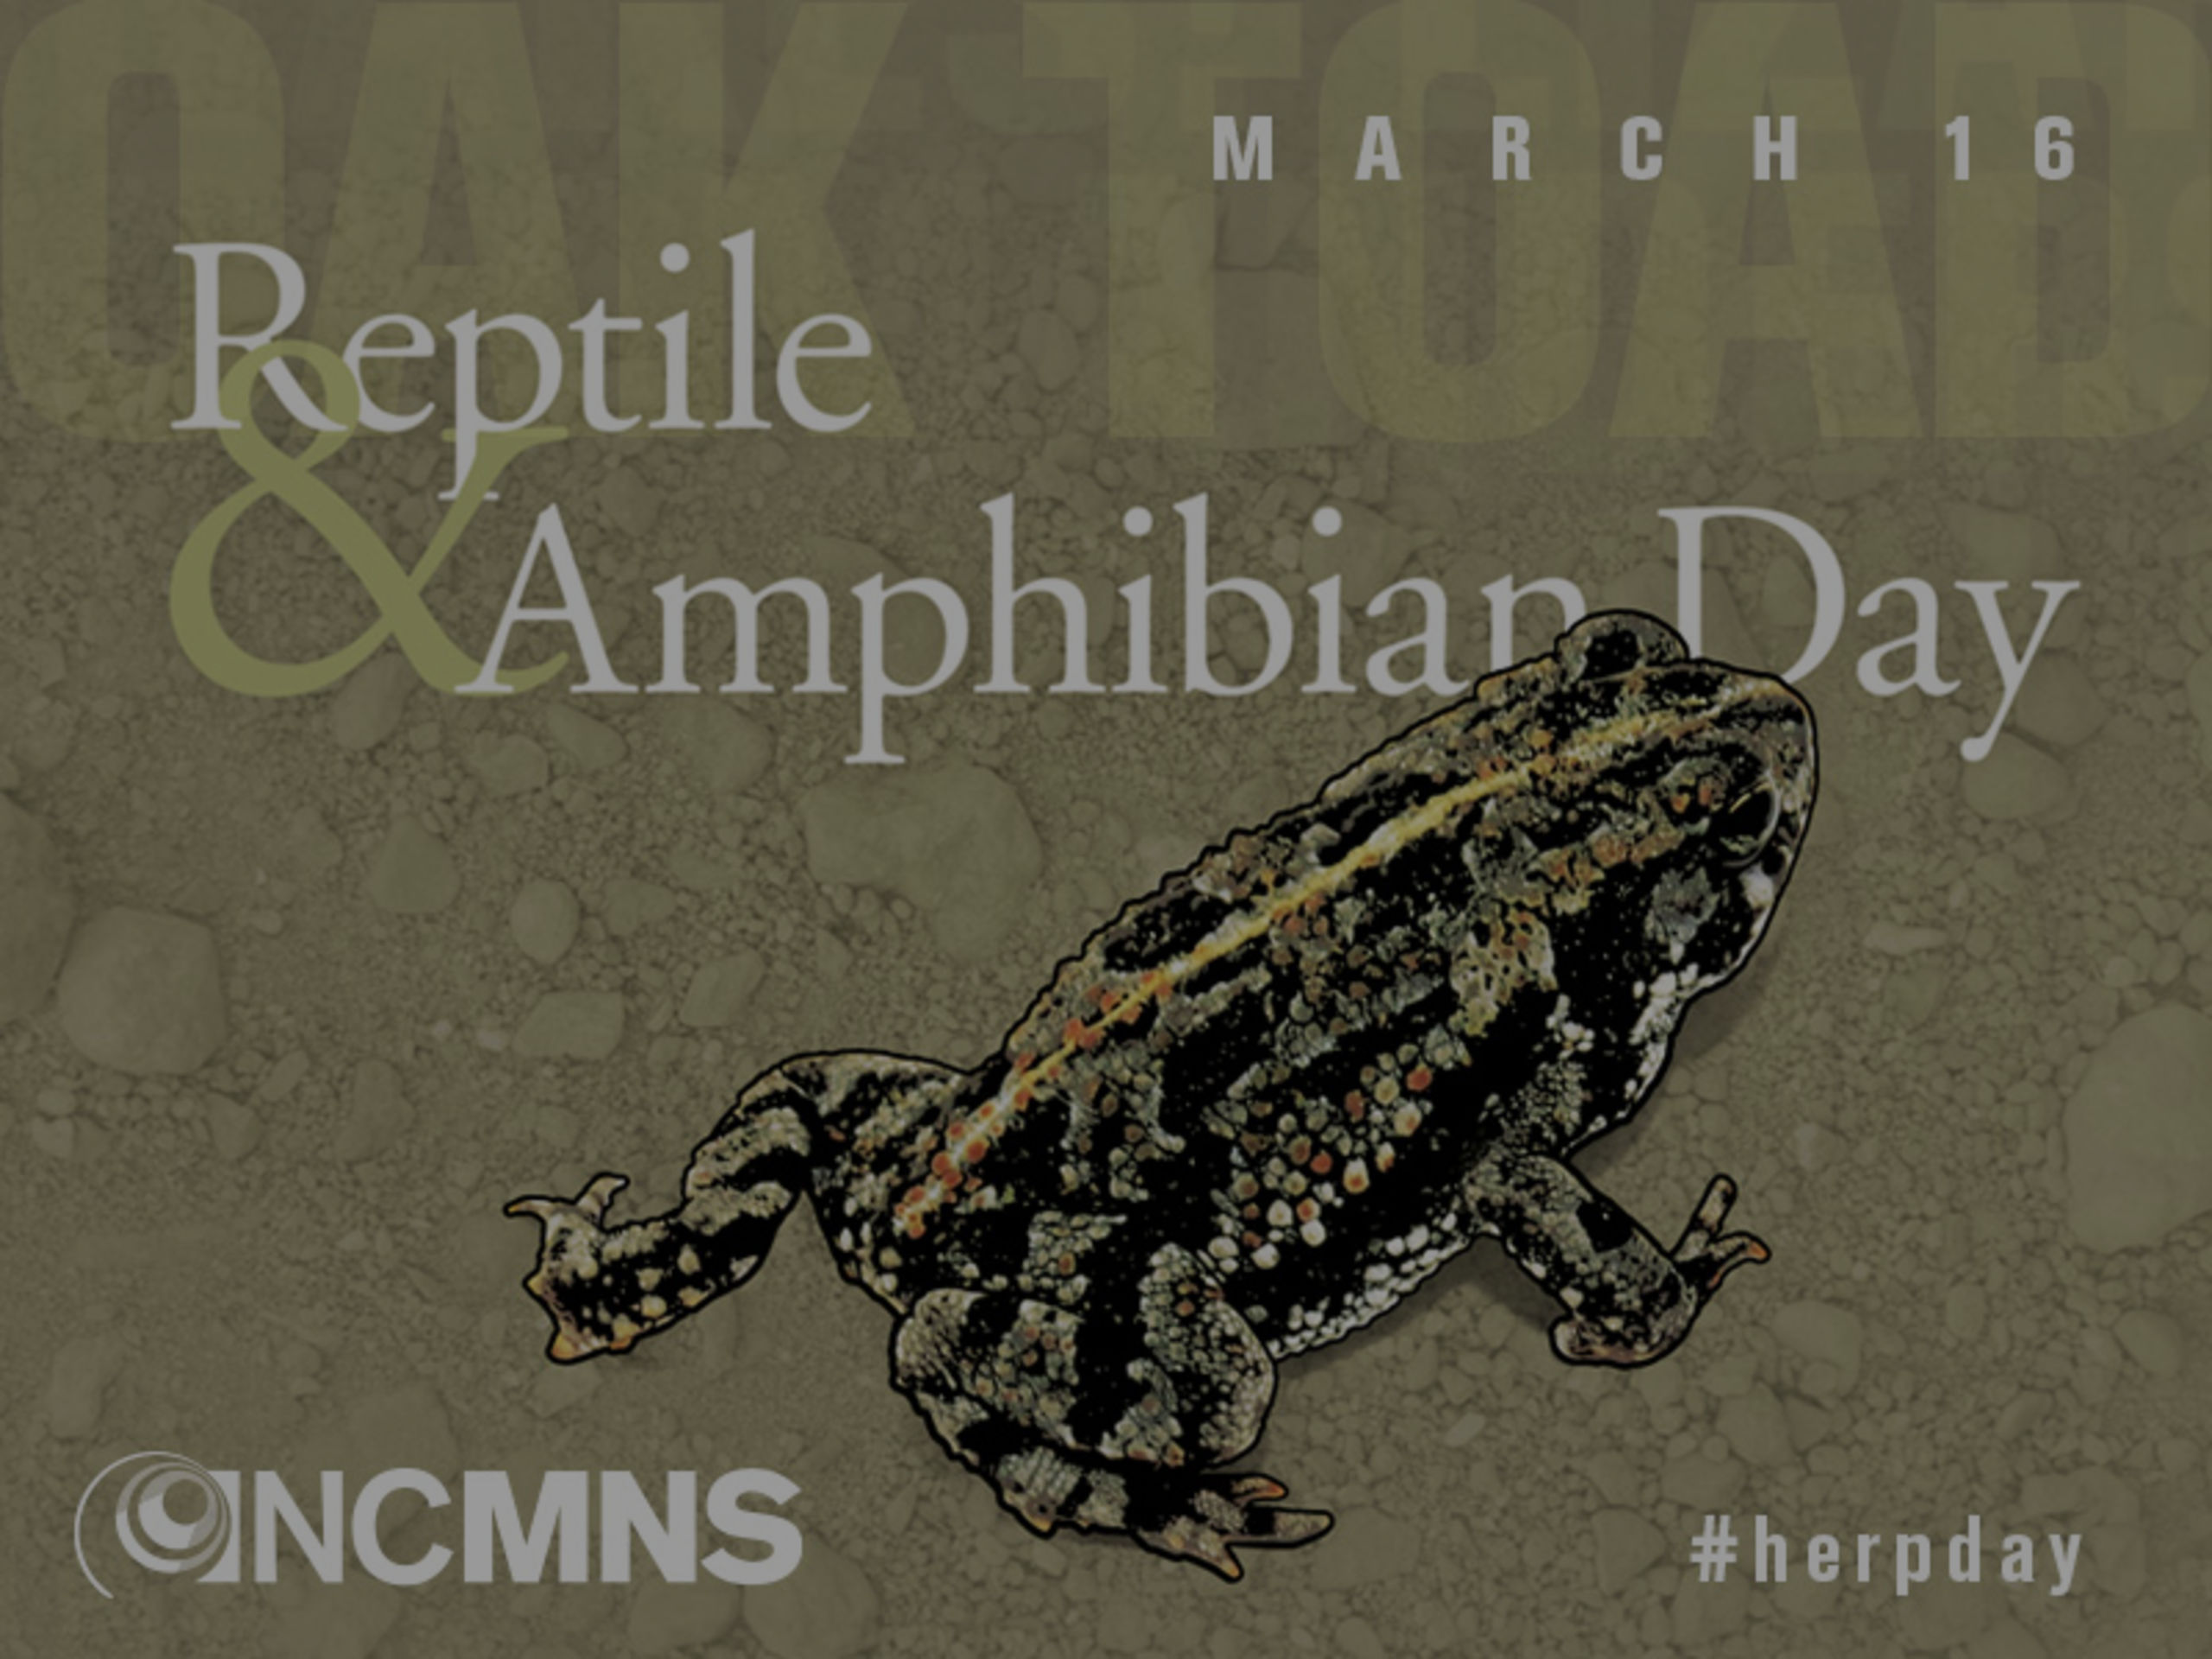 Reptile & Amphibian Day 2019 at NC Museum of Natural Sciences